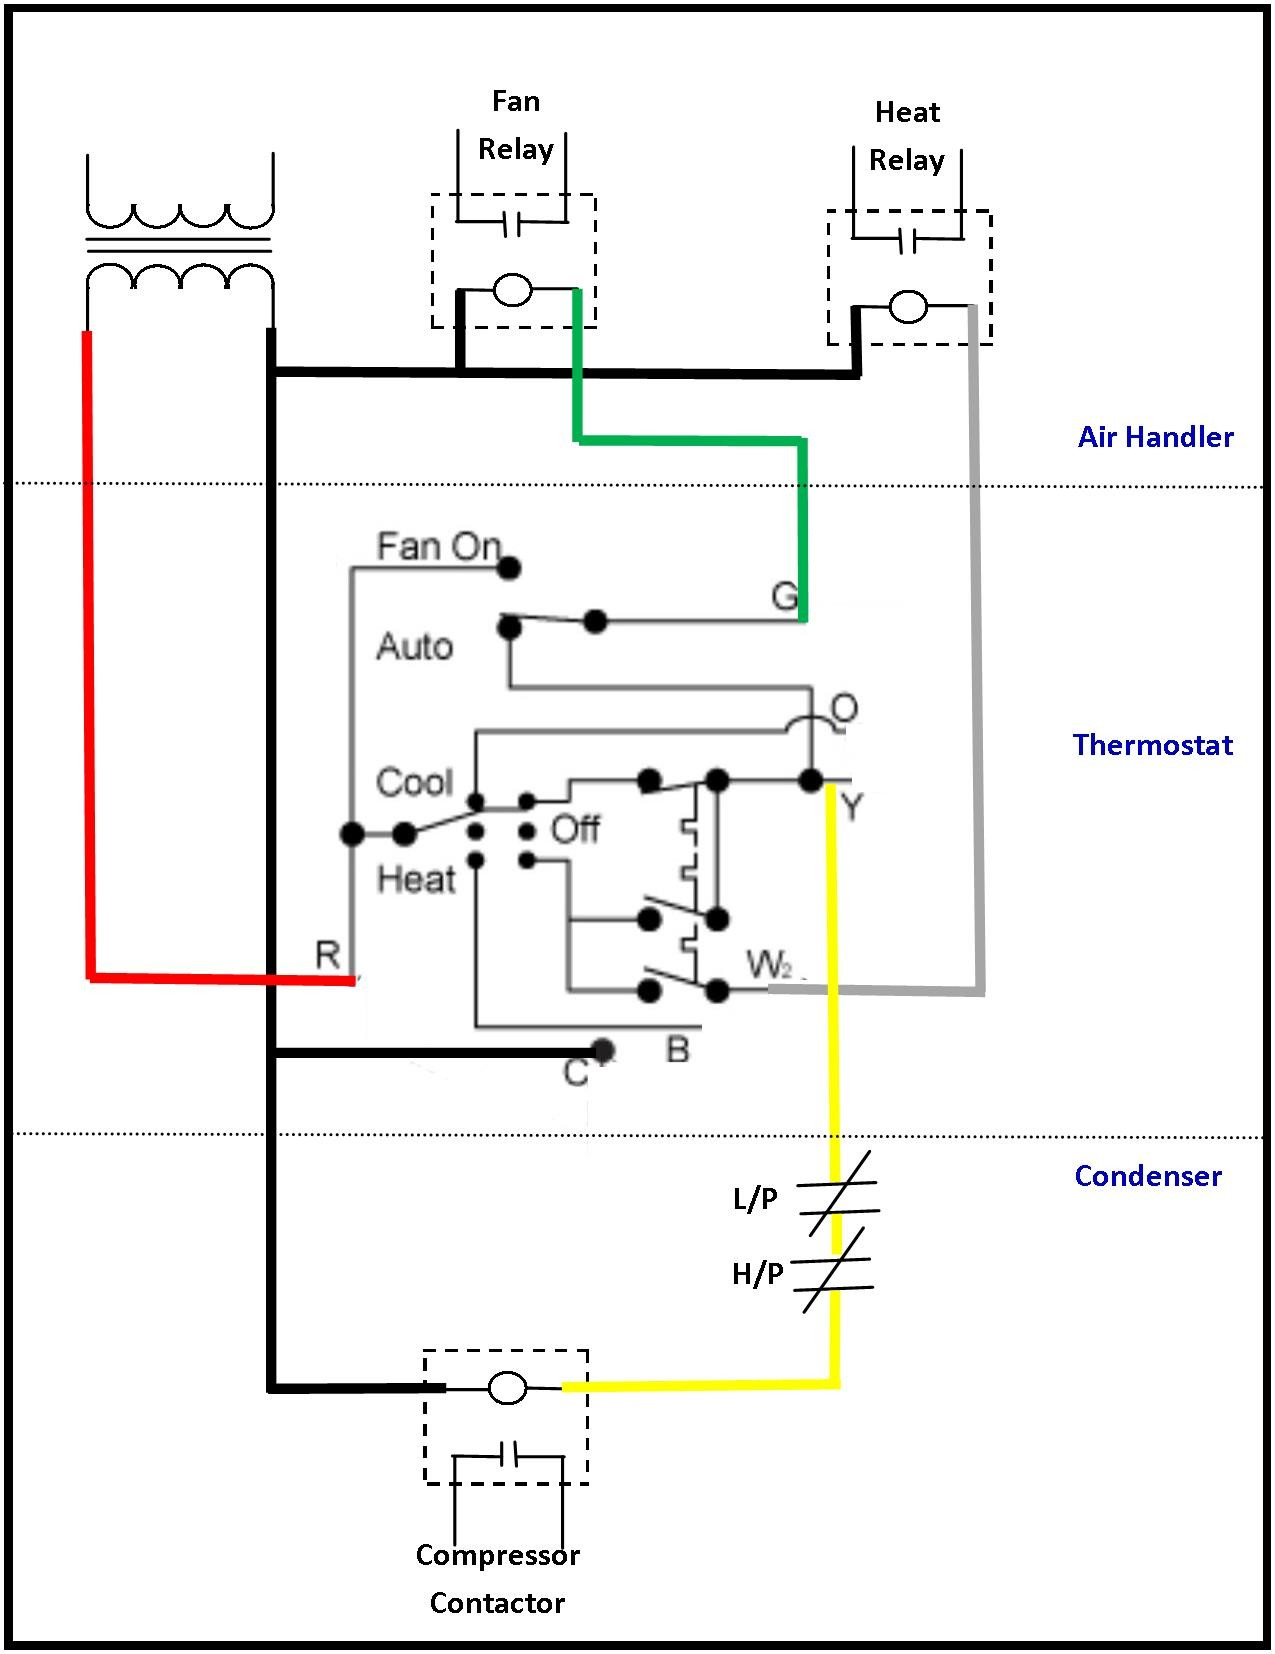 240 to 24 volt transformer wiring diagram unique wiring diagram image rh mainetreasurechest com Volvo 240 Wiring-Diagram Volvo 240 Wiring-Diagram